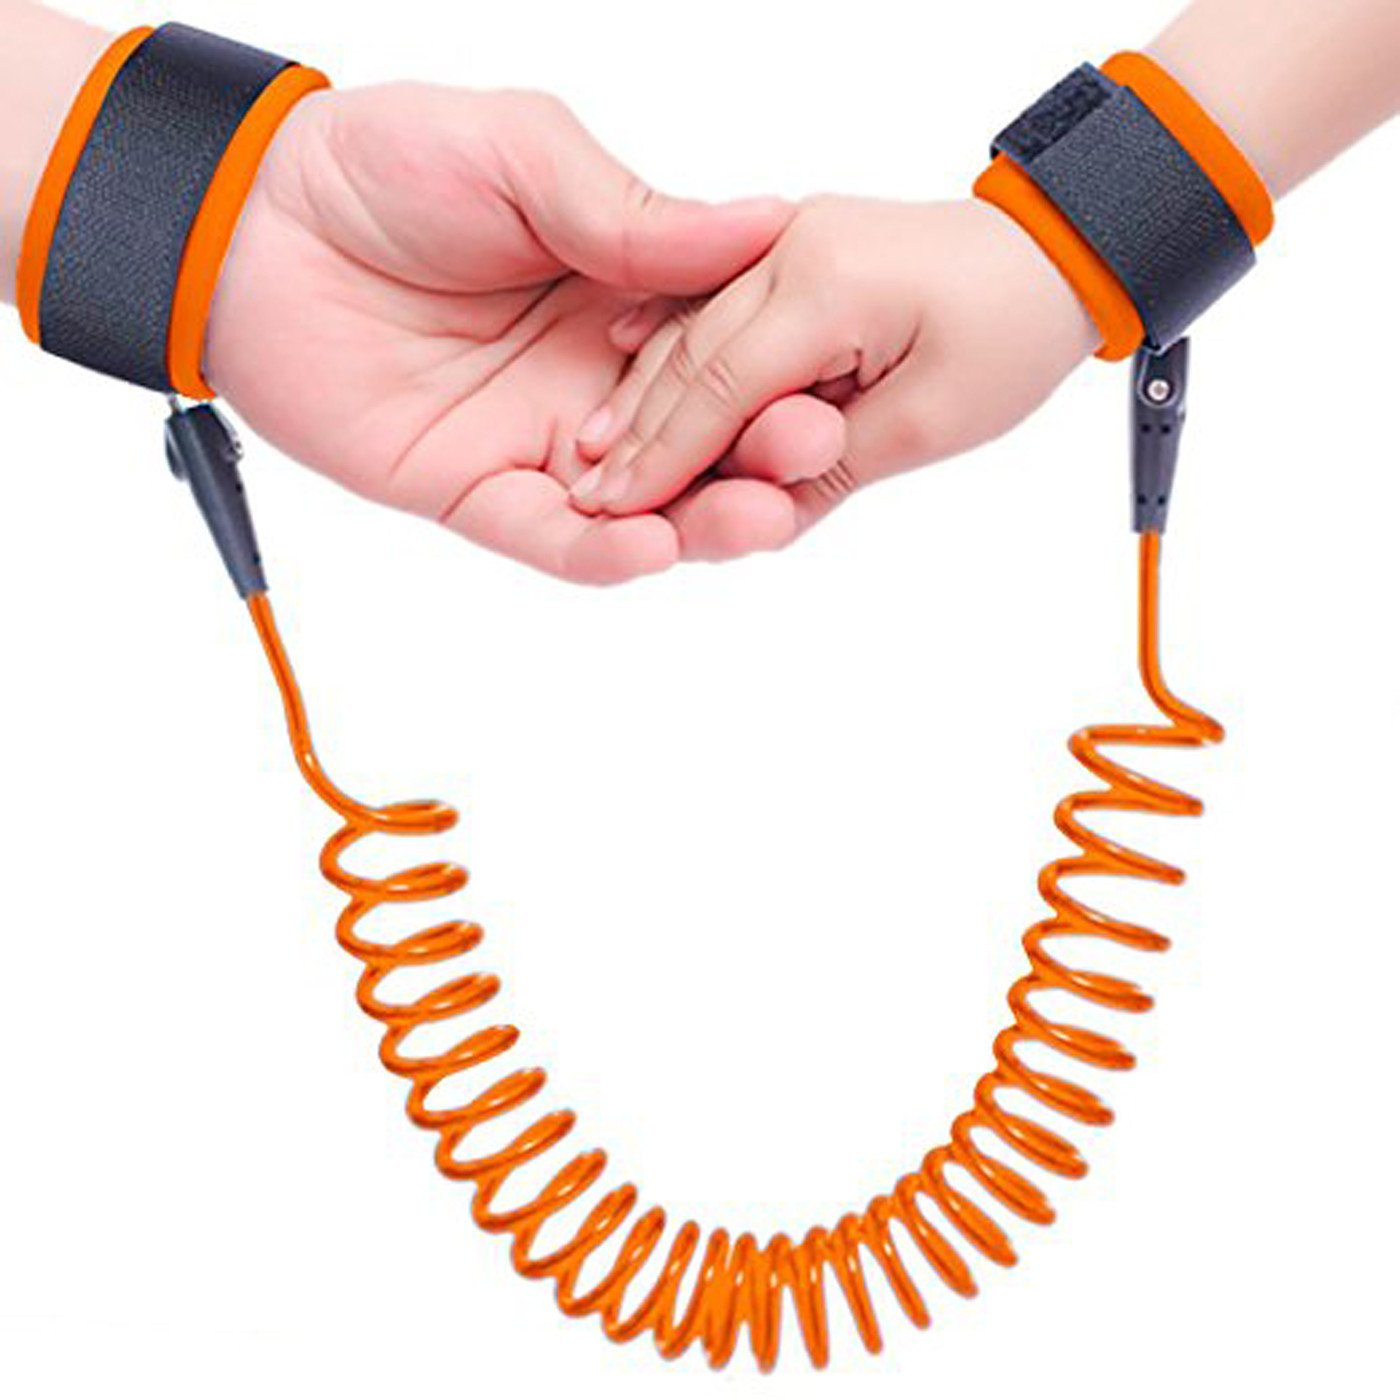 Borje Safety Child Anti Lost Wrist Link Harness Strap Rope Leash Walking Hand Belt BJ056-Orange-free size(B)